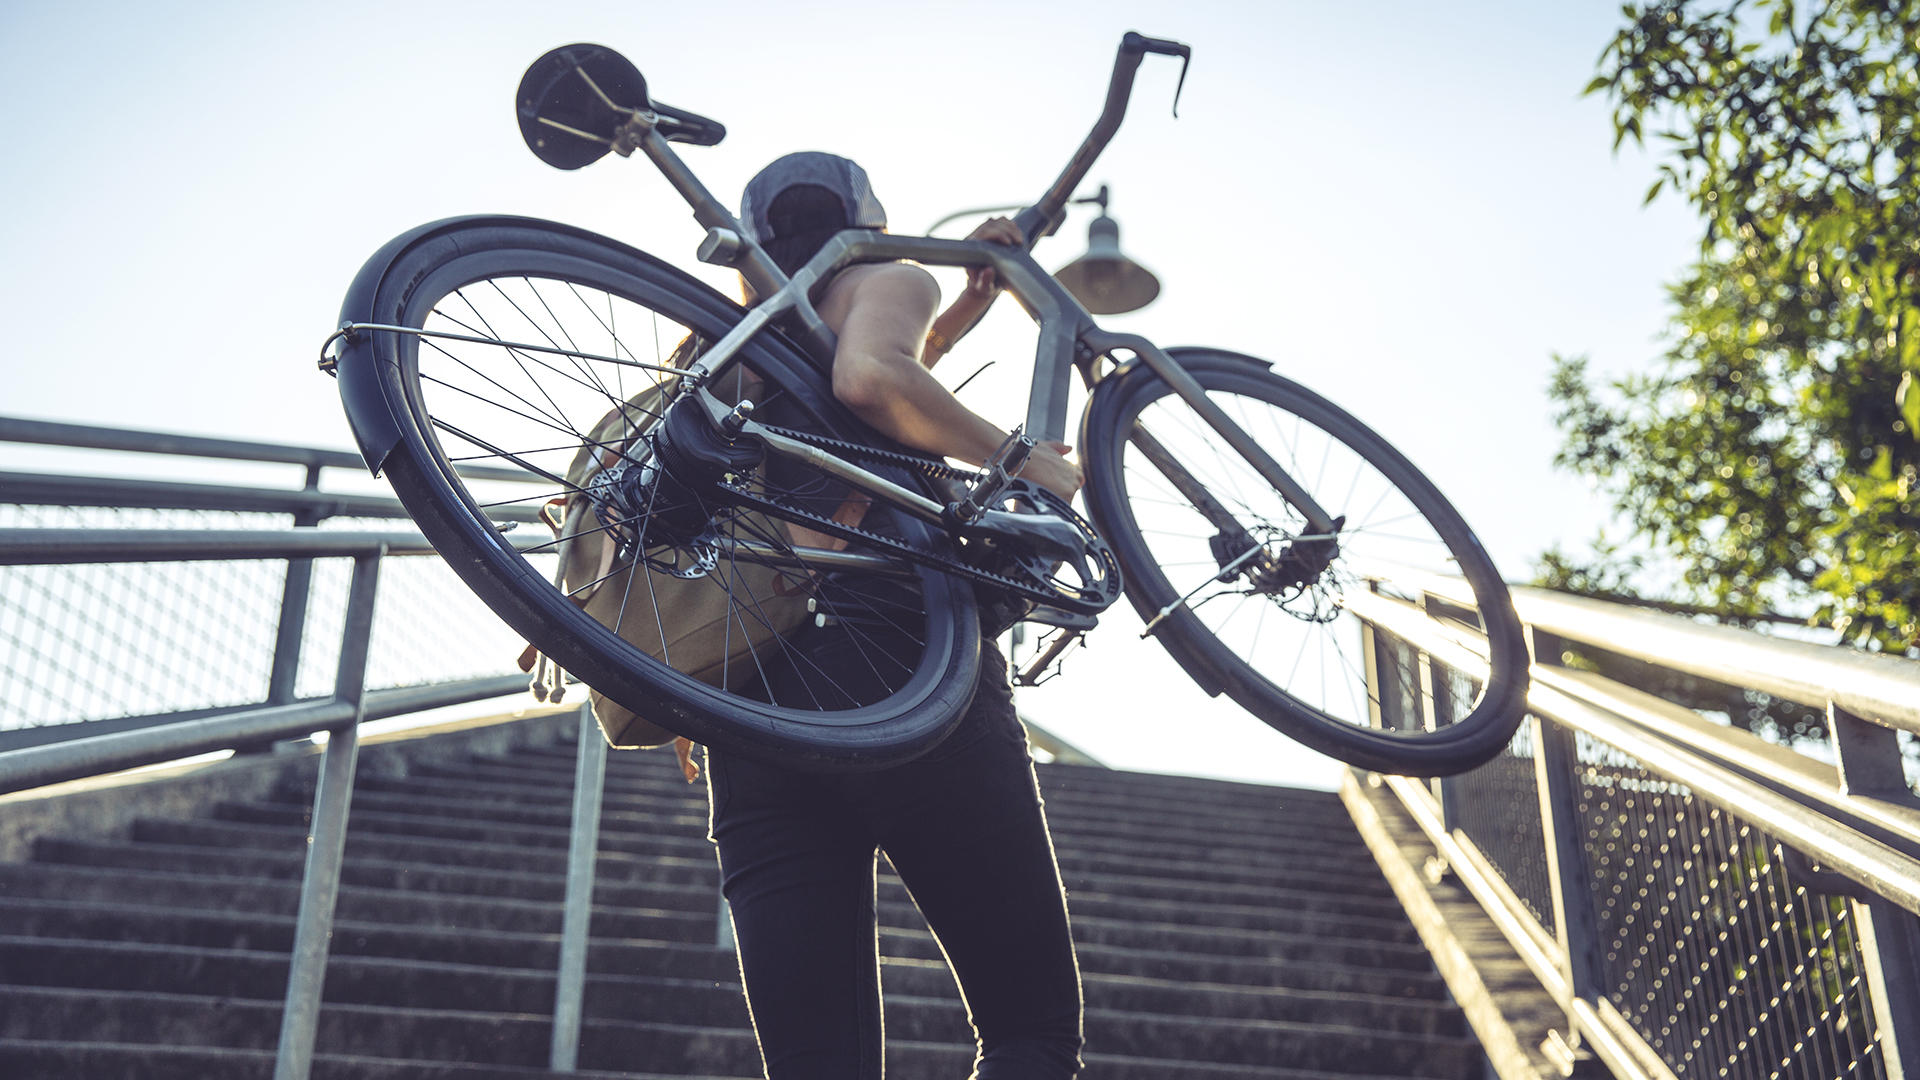 industry-ti-cycles-solid-bike-lifestyle-image-1